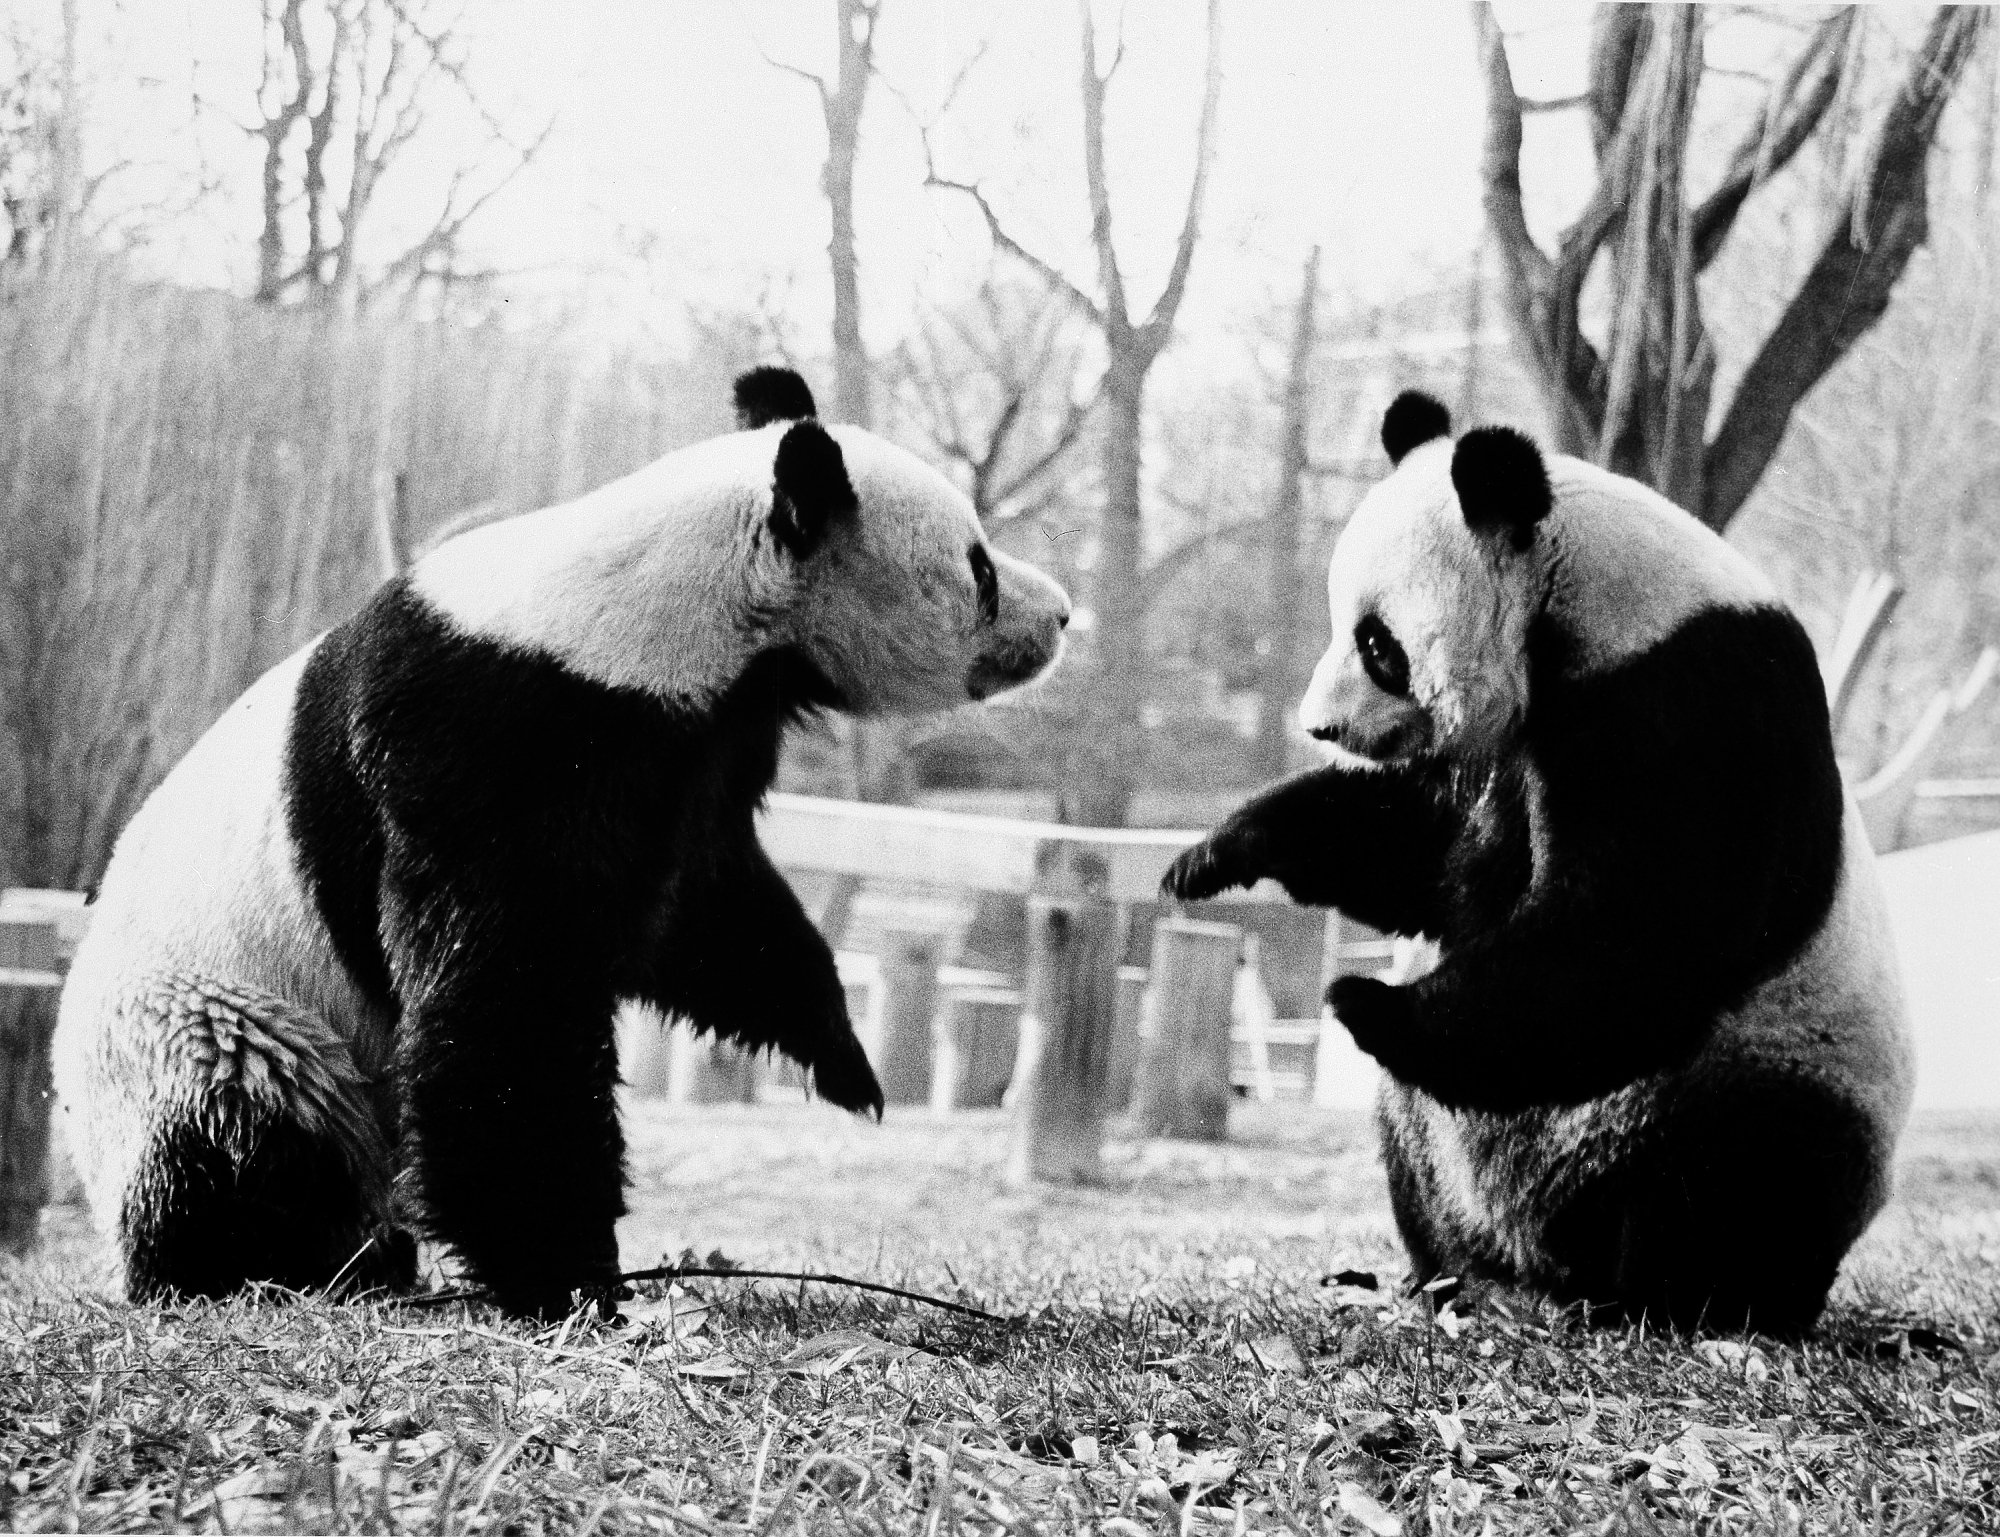 Giant pandas at the zoo have delighted visitors and contributed to conservation efforts since 1972. Here, the first pandas, Ling-Ling and Hsing-Hsing, play together. Photo circa 1985 courtesy of the Smithsonian Institution Archives.